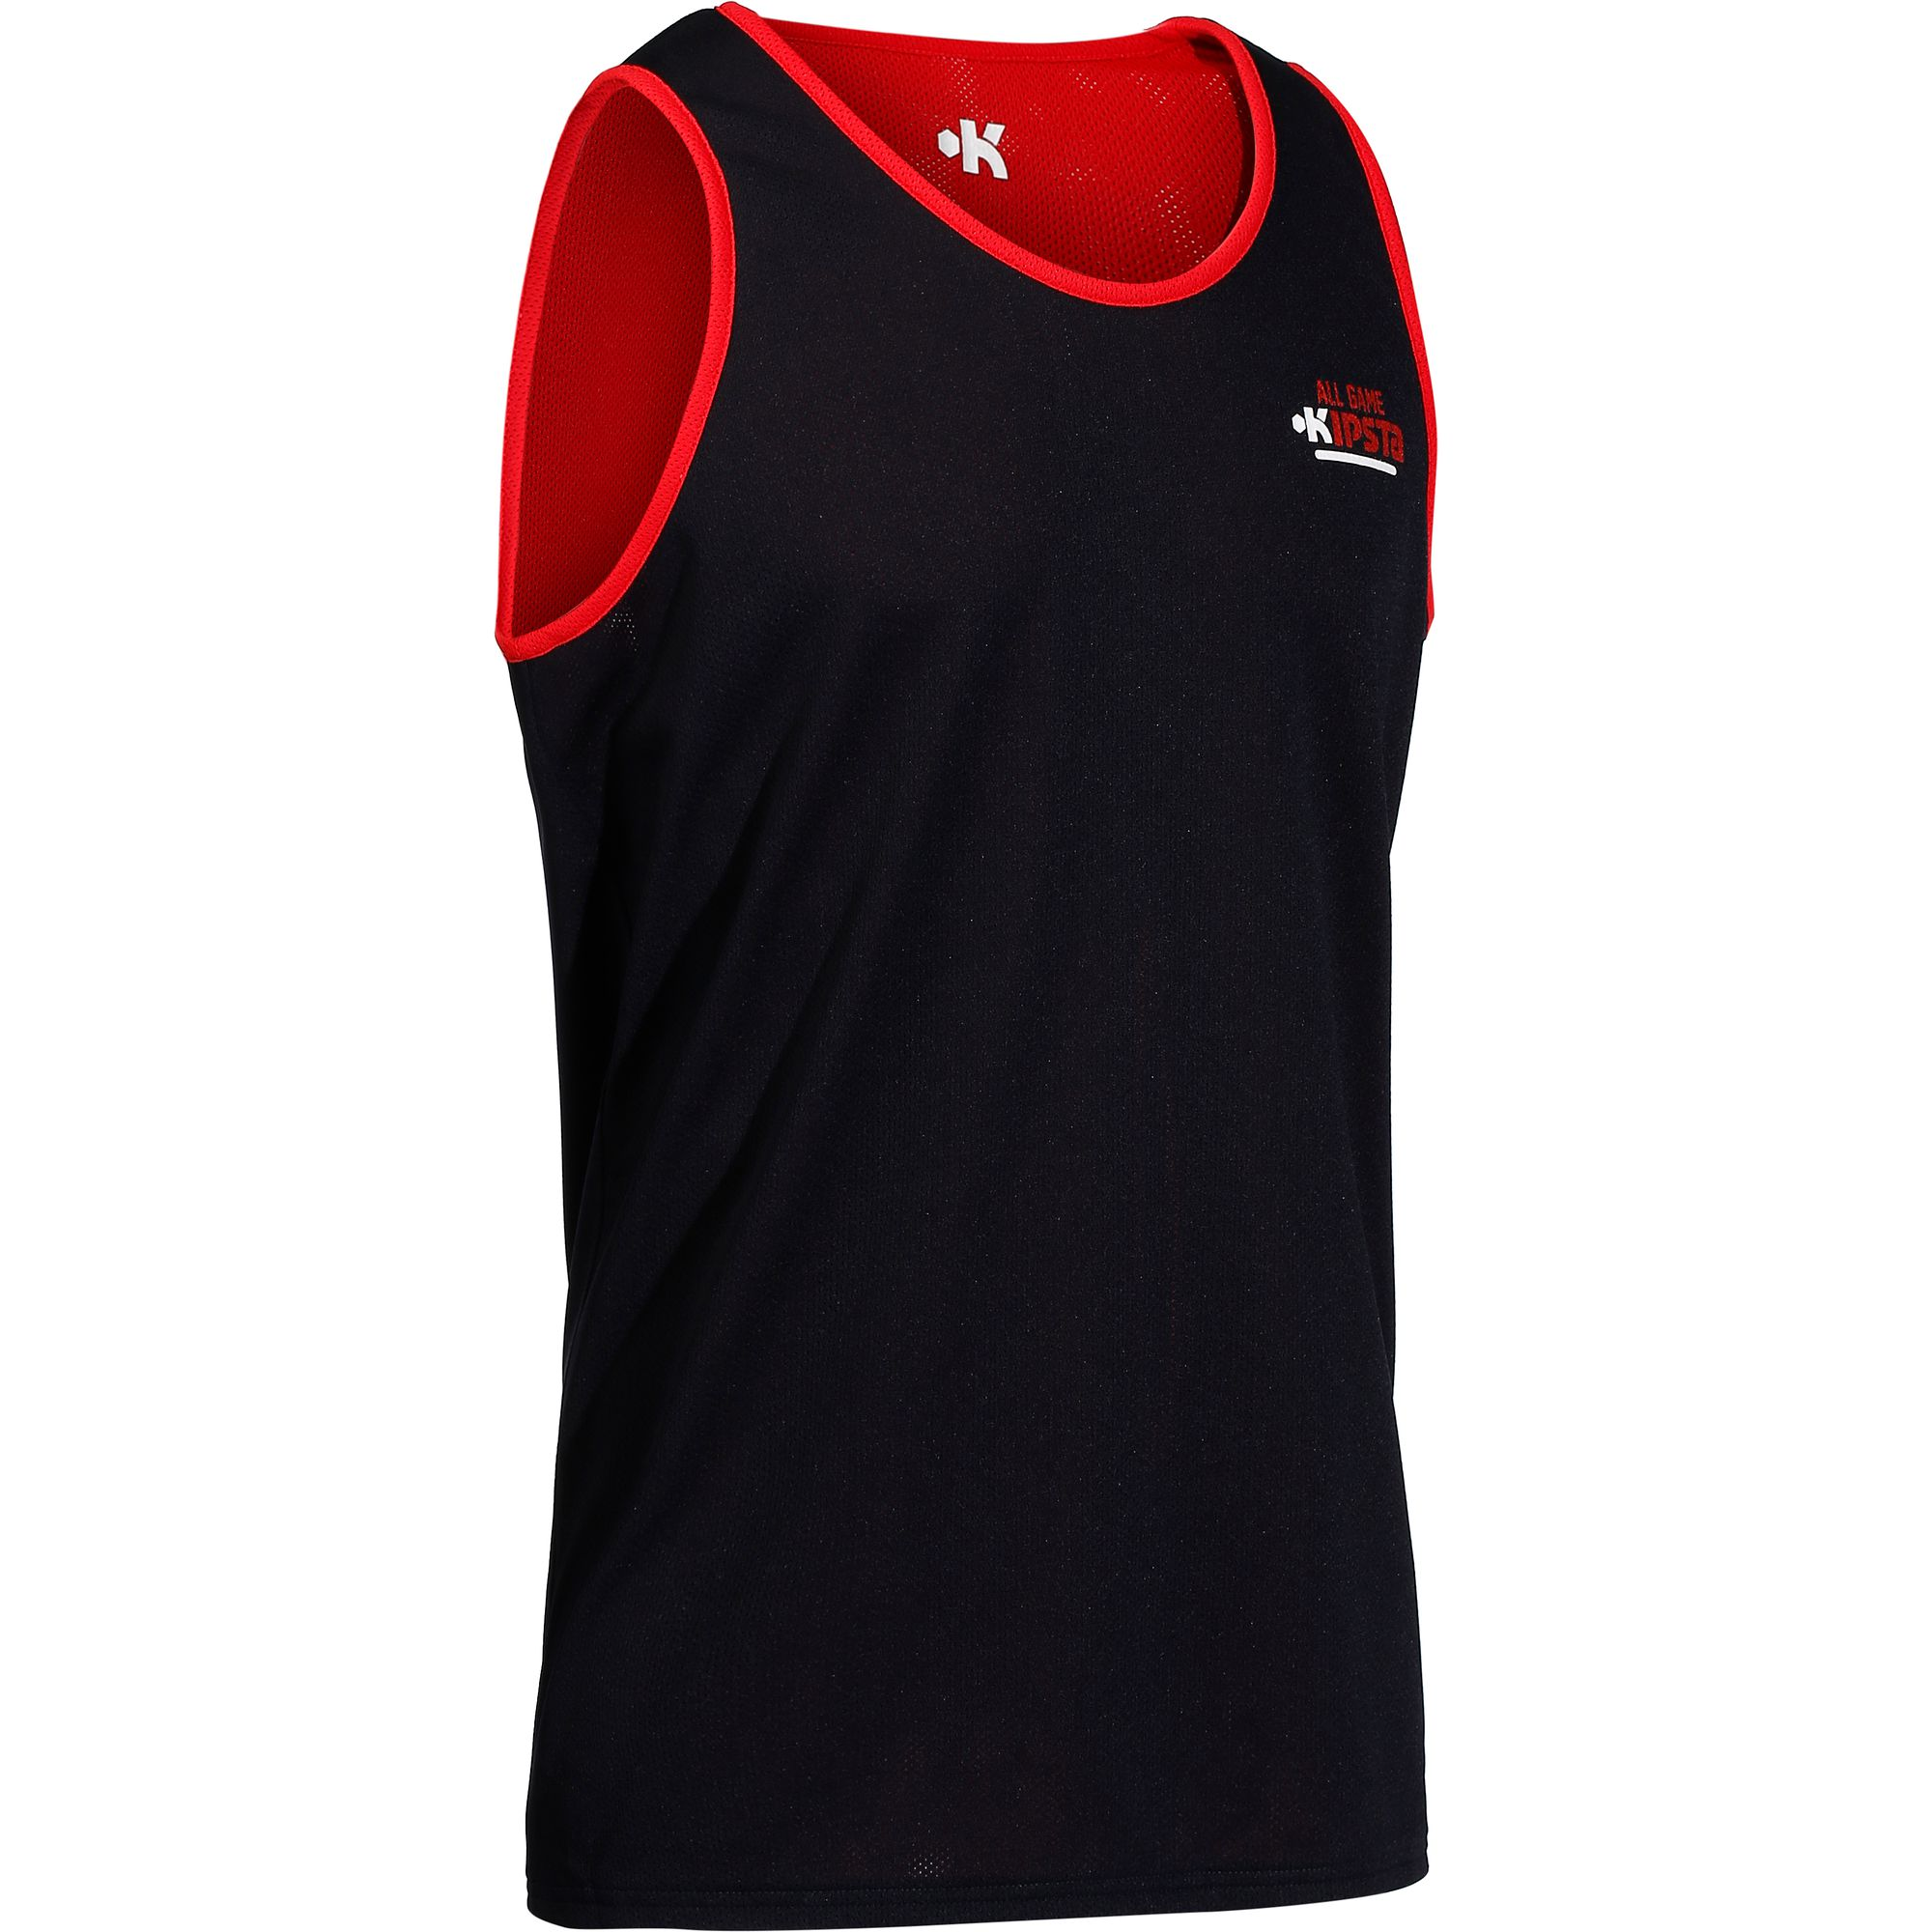 MAILLOT BASKETBALL ADULTE RÉVERSIBLE NAVY ROUGE